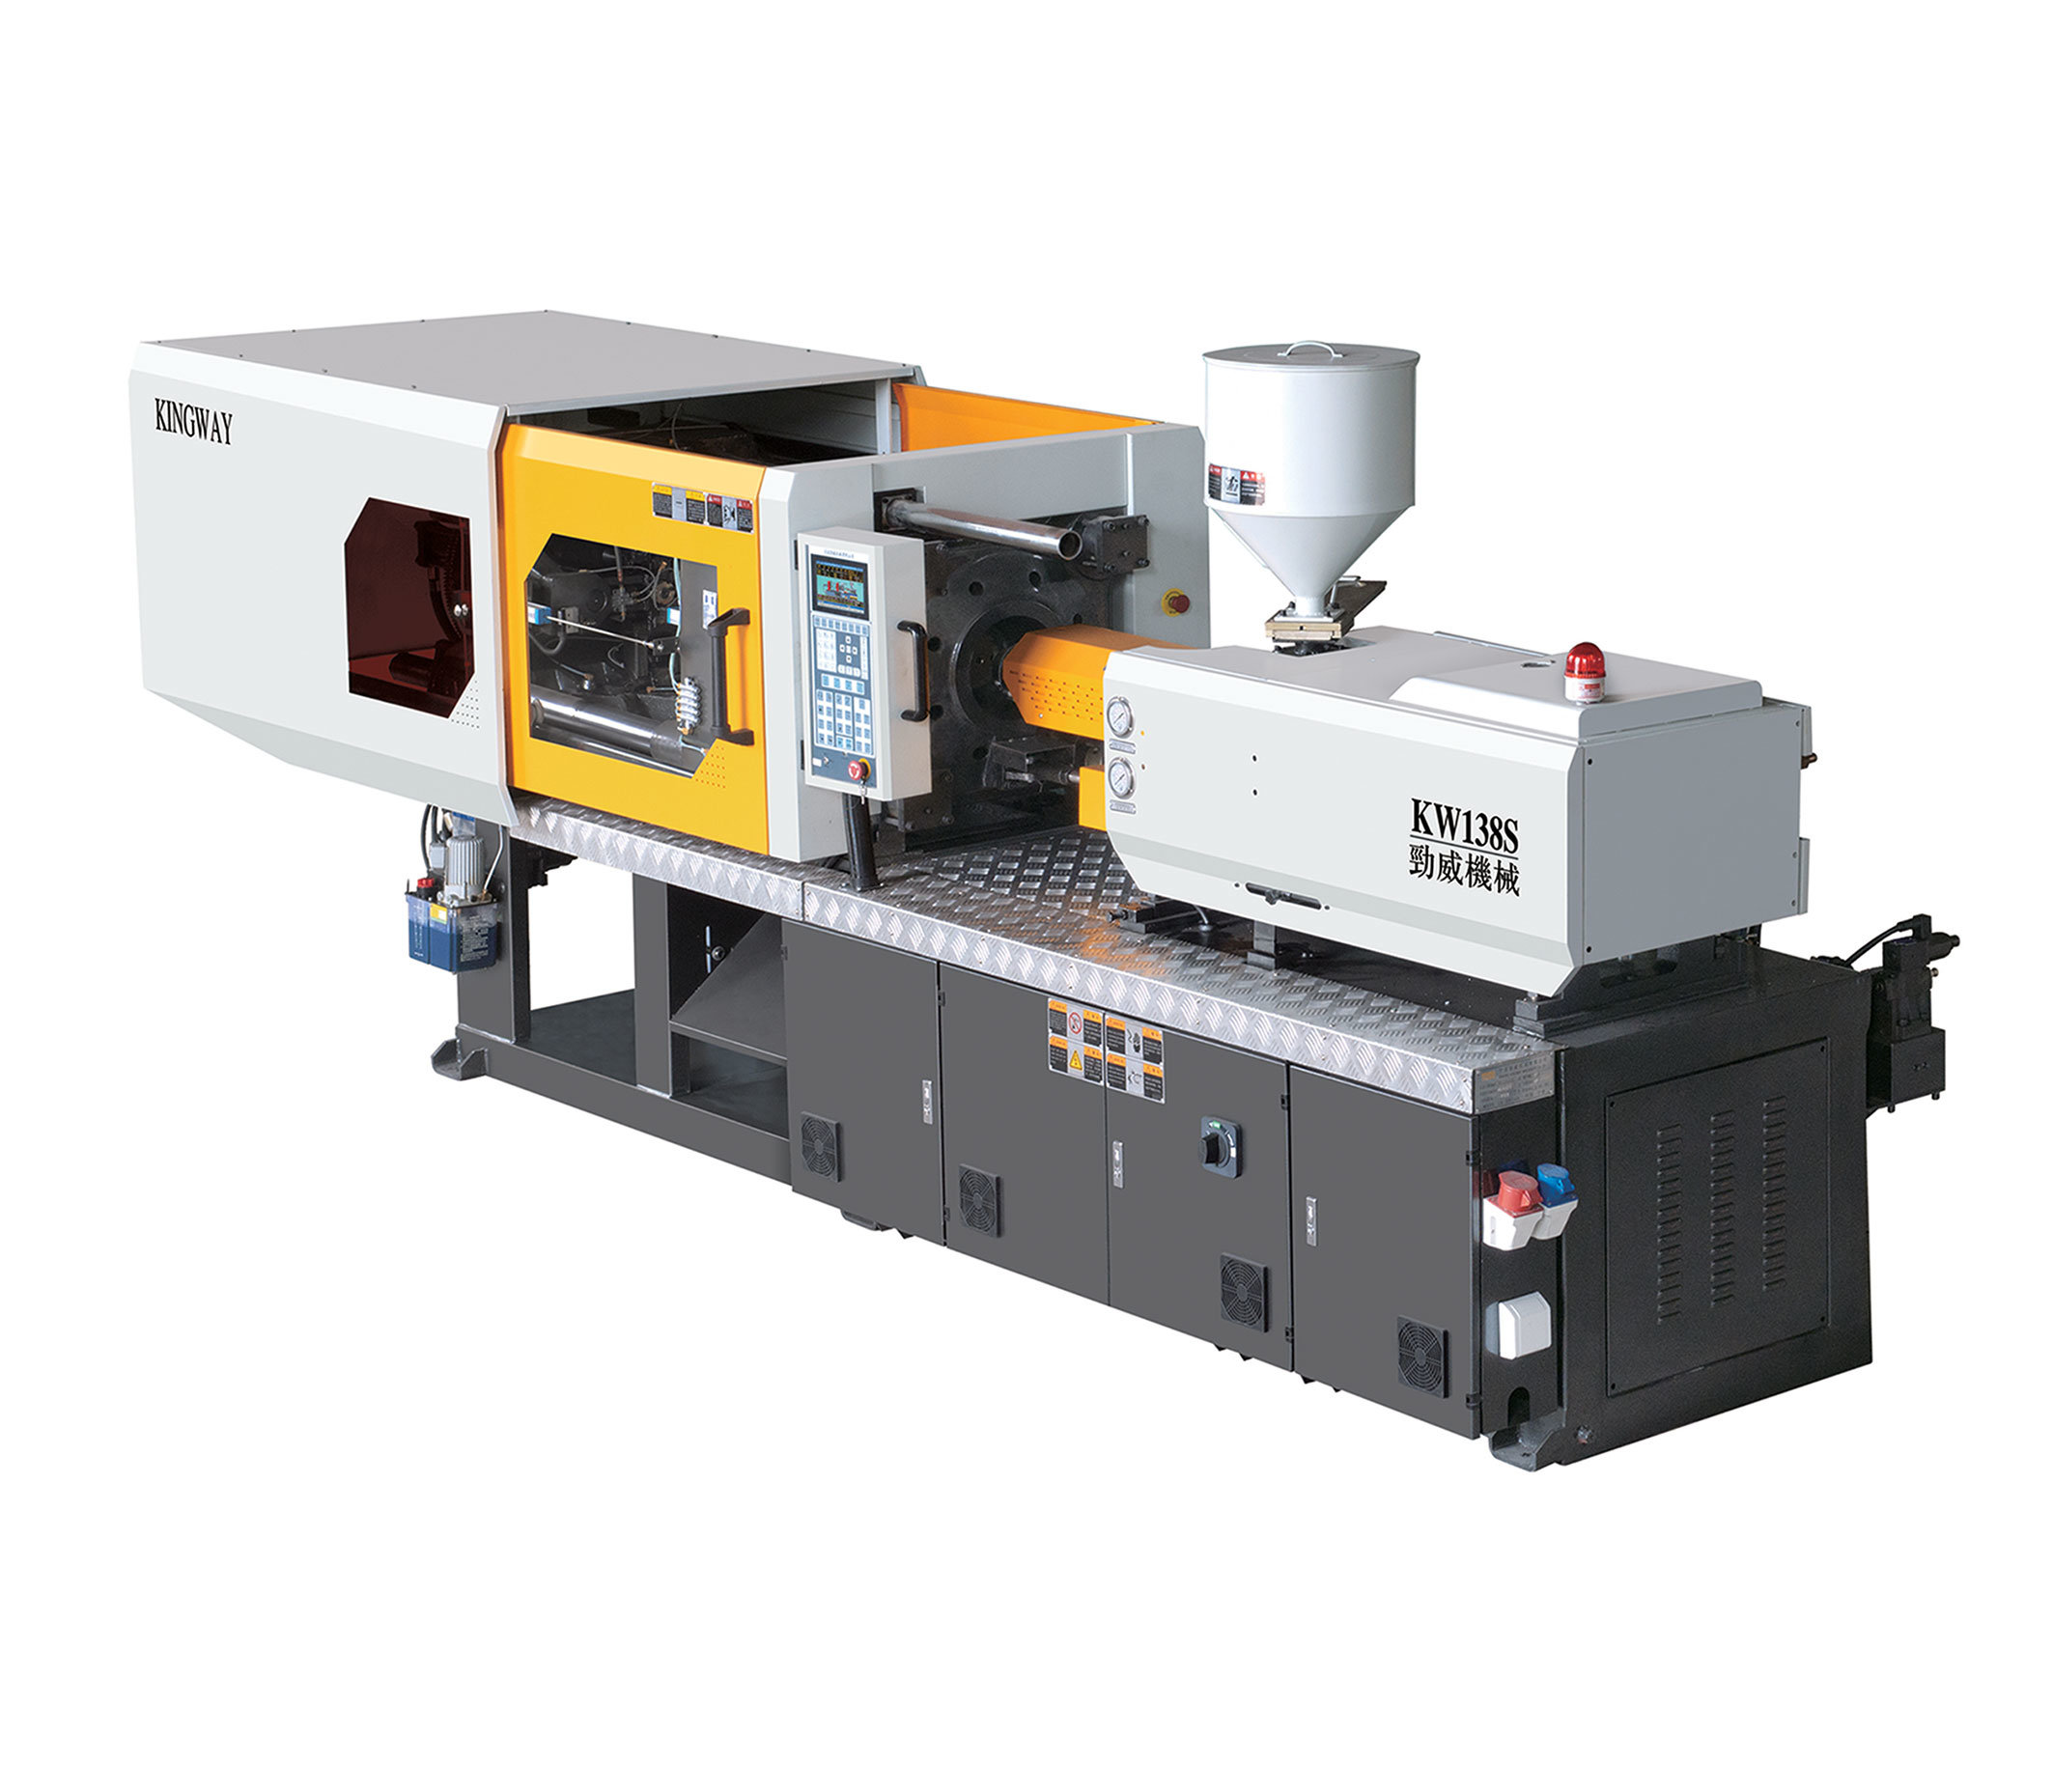 118t High Performance Plastic Injection Molding Machine